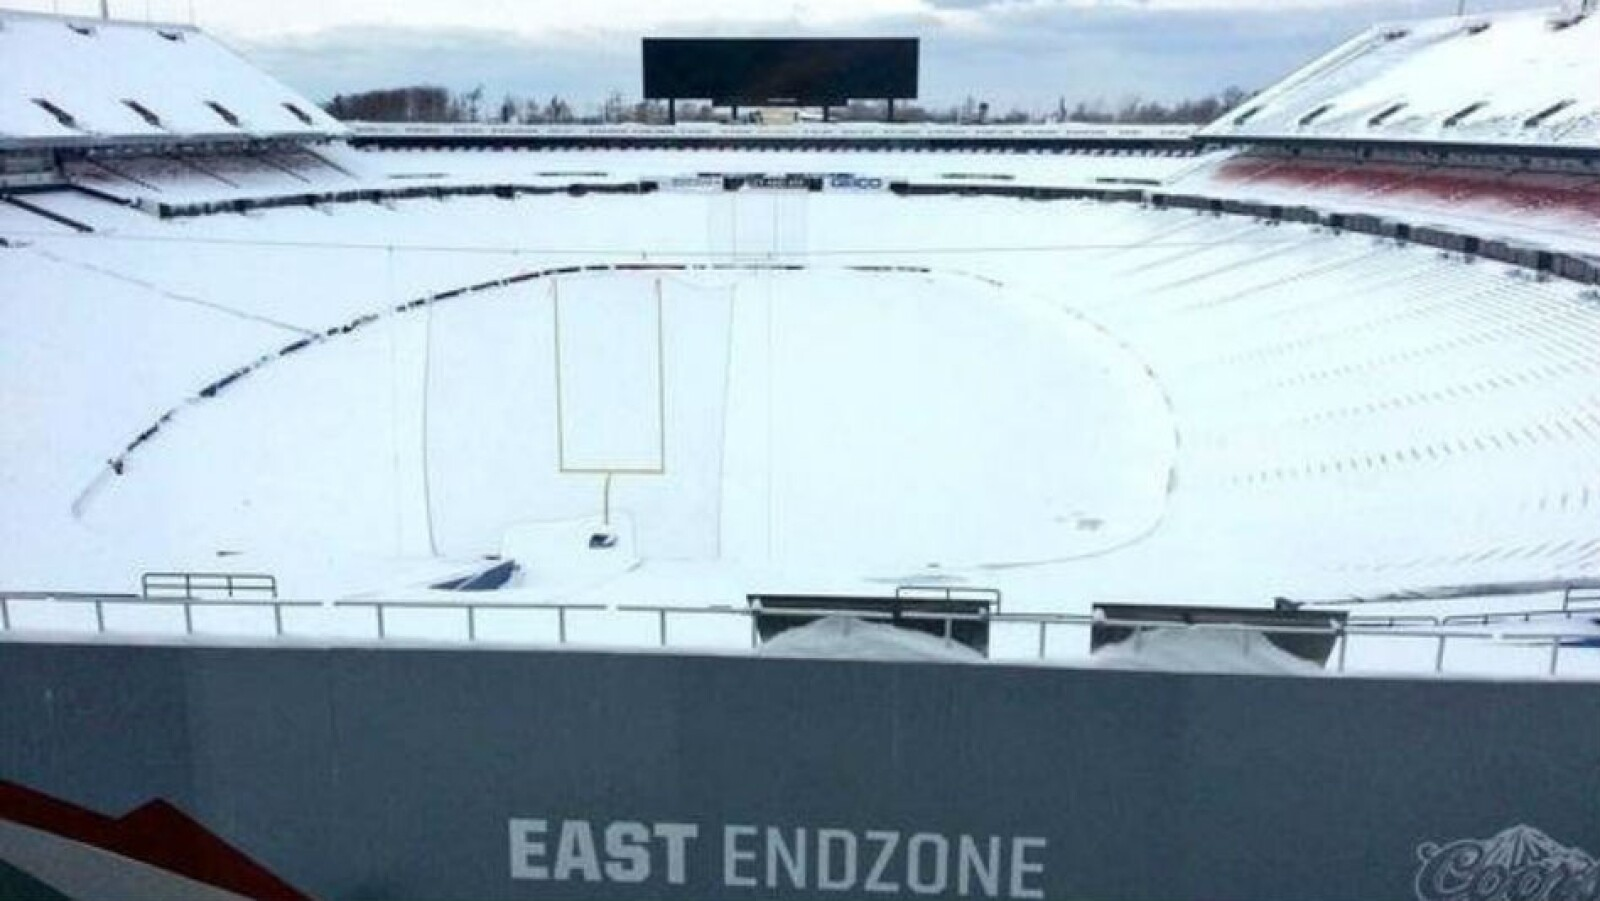 Estadio de Buffalo Bills bajo la nieve